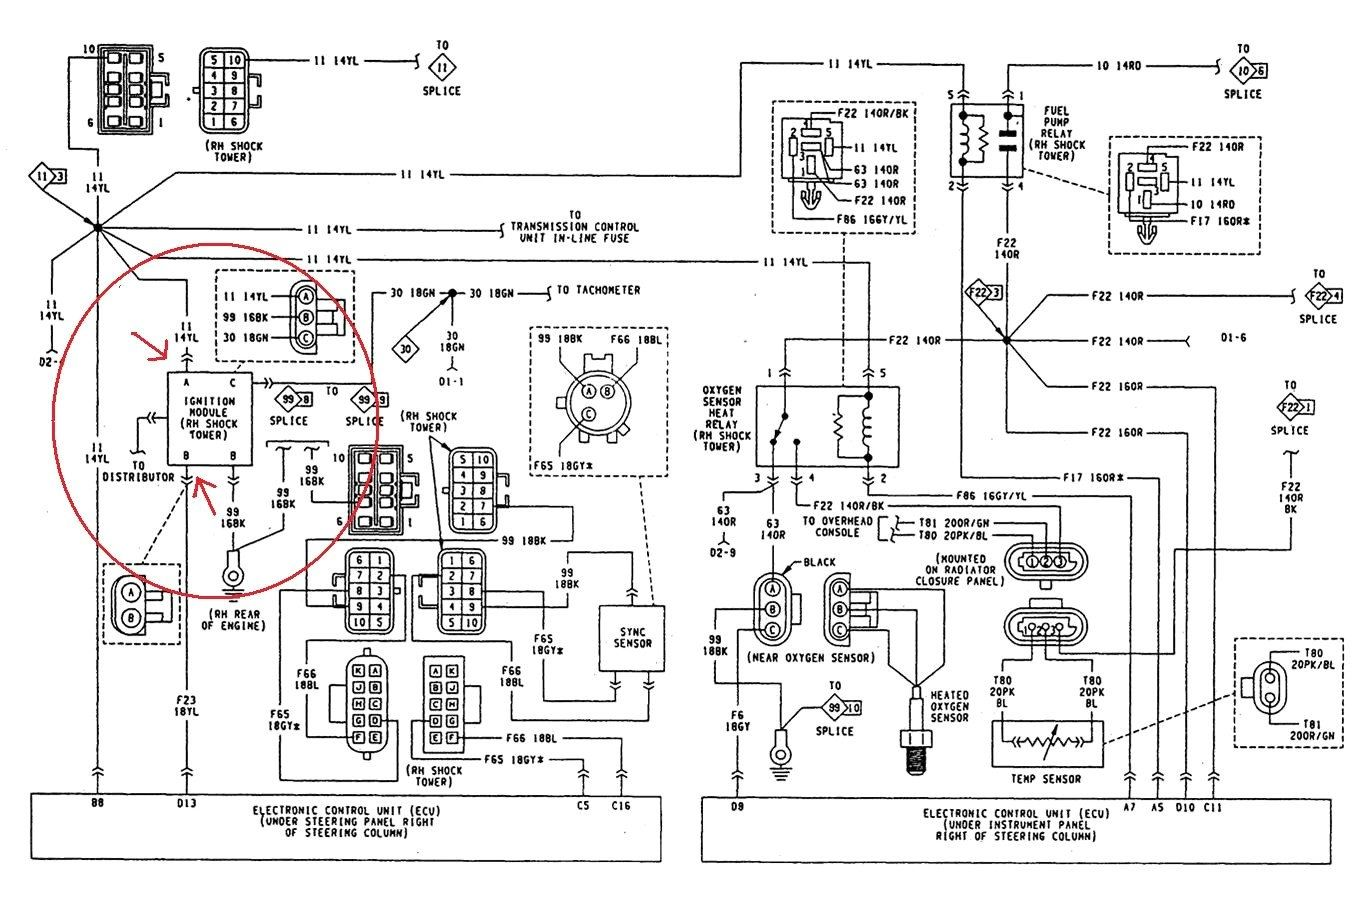 medium resolution of 1990 jeep yj vacuum diagram 1990 jeep wrangler 4 2 vacuum diagram within 1990 jeep wrangler wiring